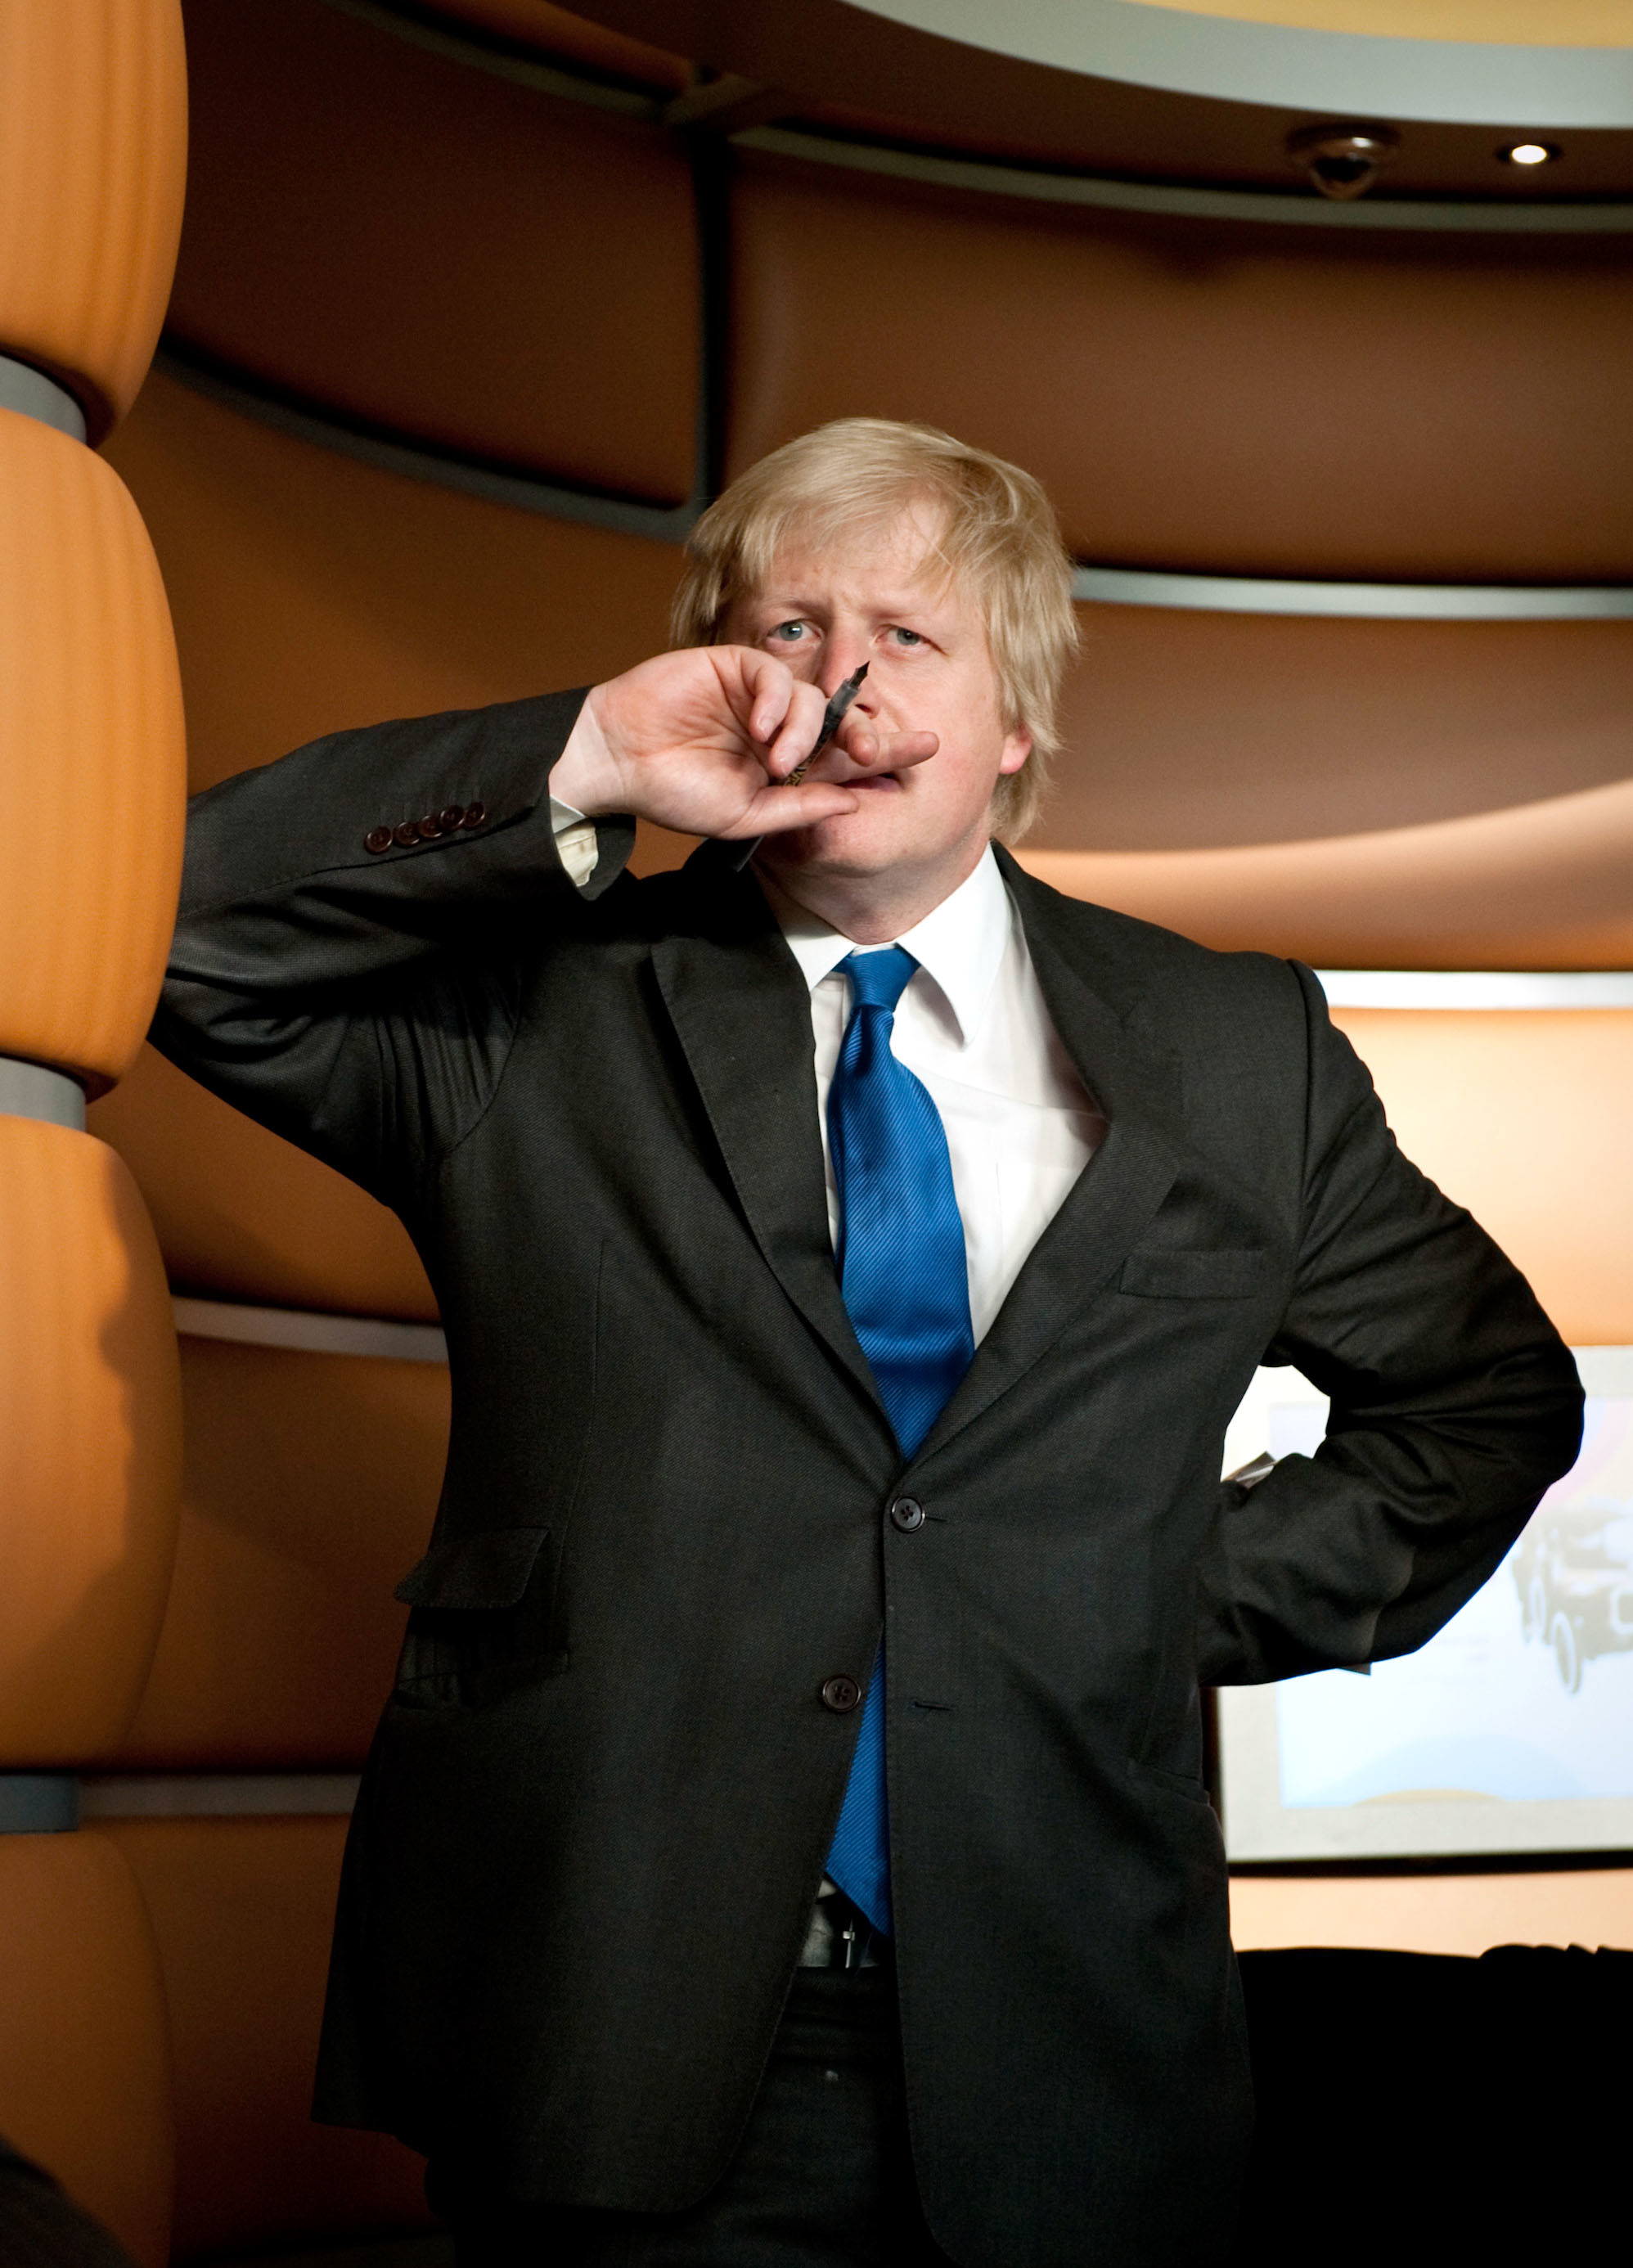 Boris Johnson attends the �20 Million Opening of the Galleries of Modern London at the Museum of London, London, 27th May 2010.